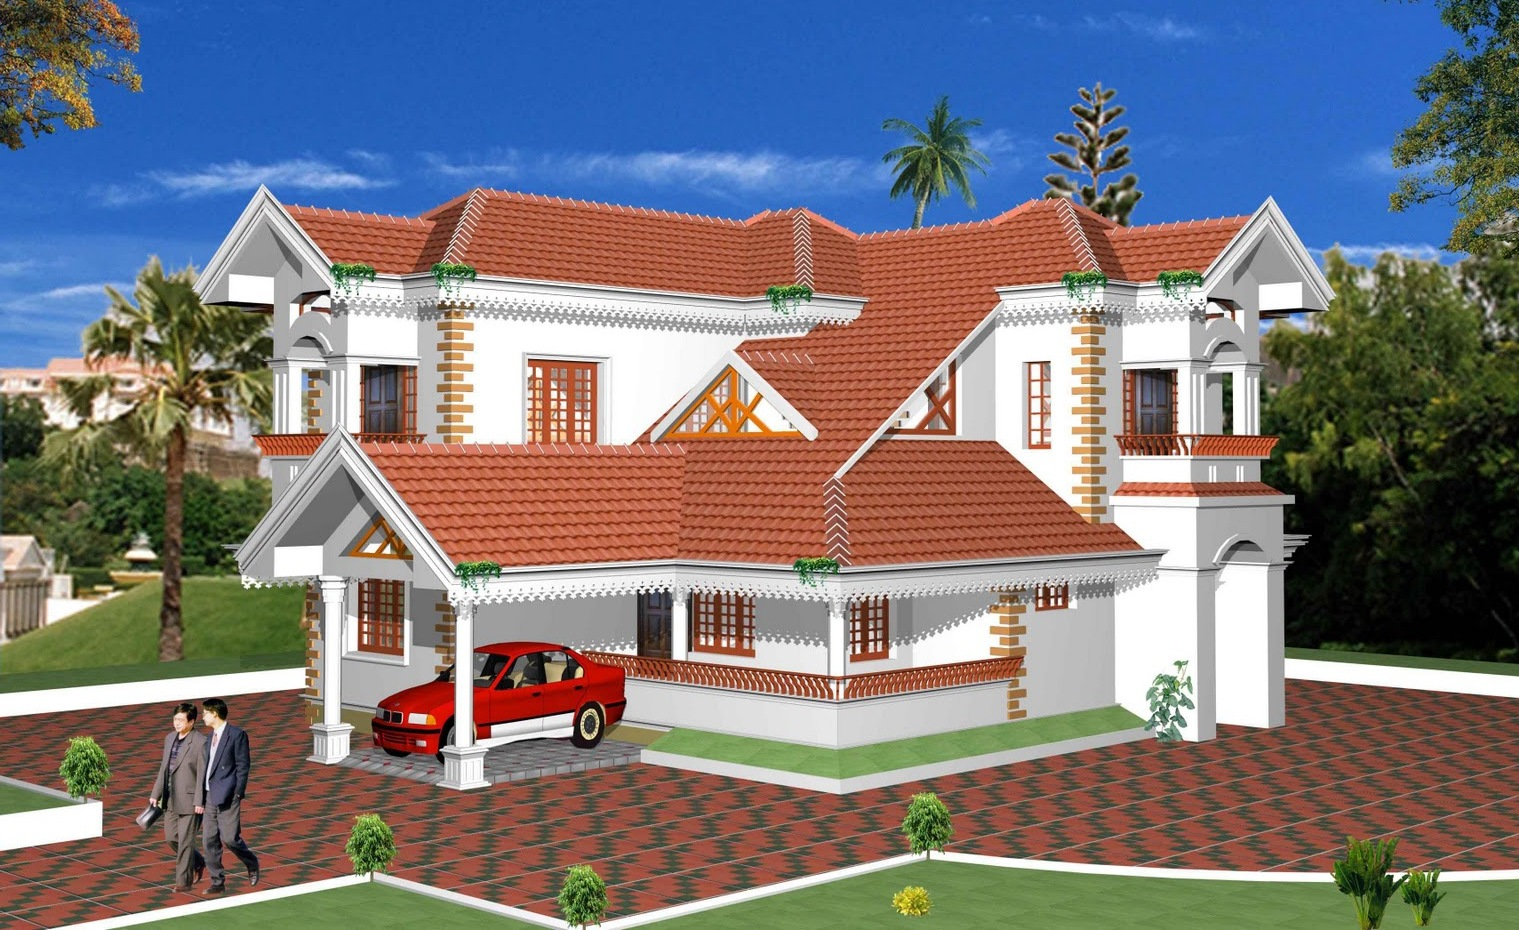 Changing The Front Elevation Of A House : Building front elevation designs omahdesigns